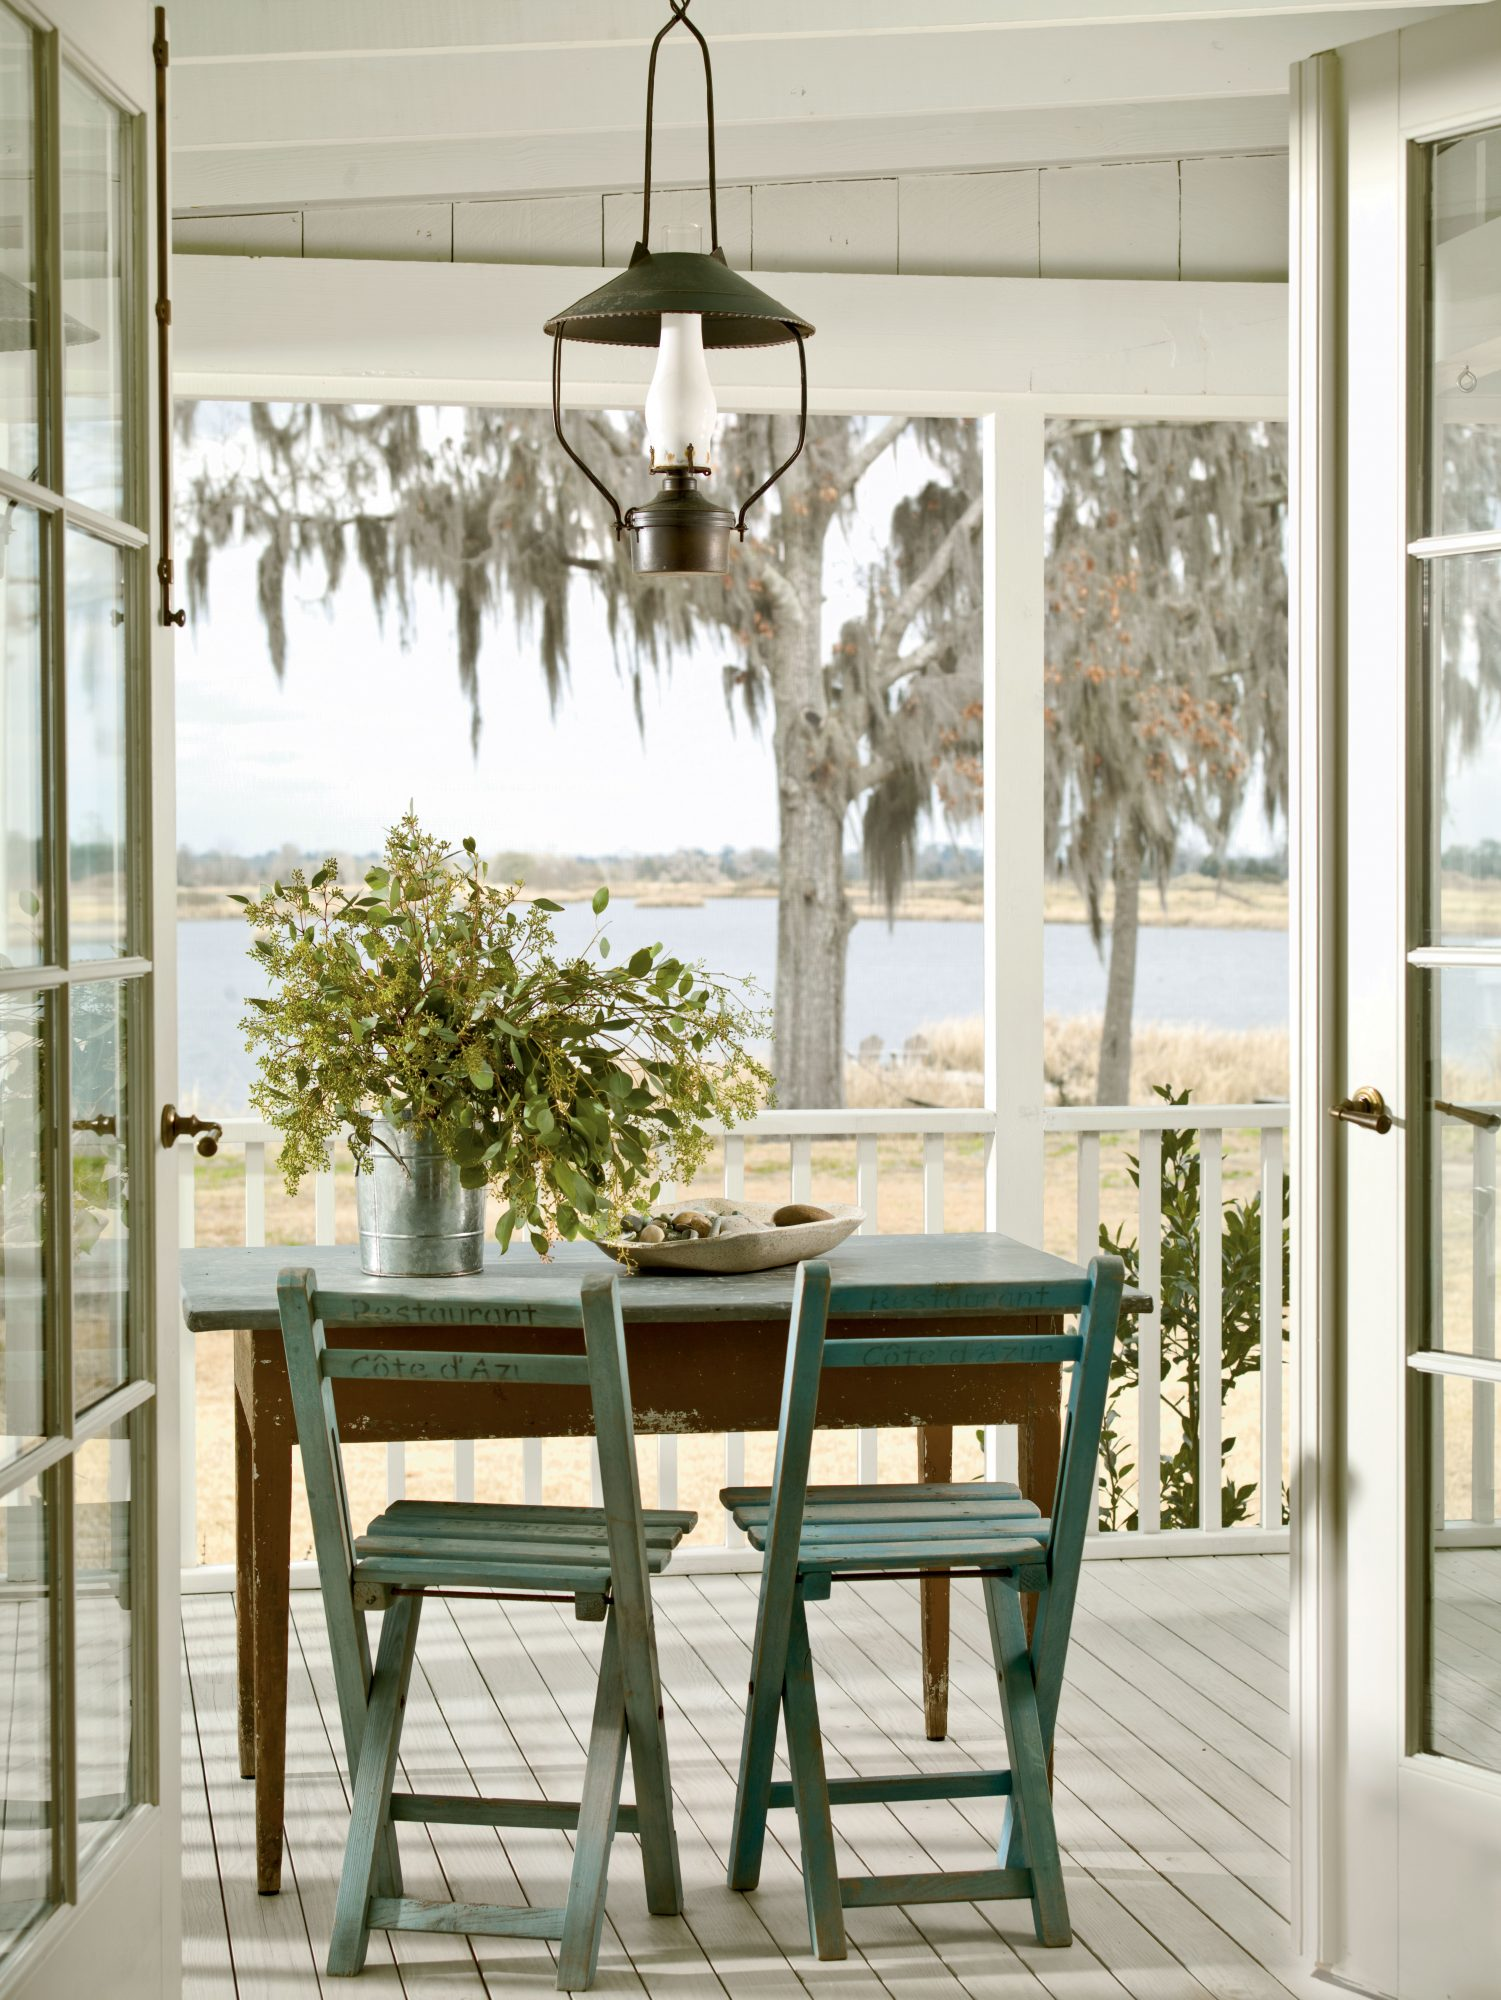 Glass French doors provide easy access to a porch, plus they bring seaside views indoors. A wooden table and chairs positioned toward the water is all this simple porch needs.